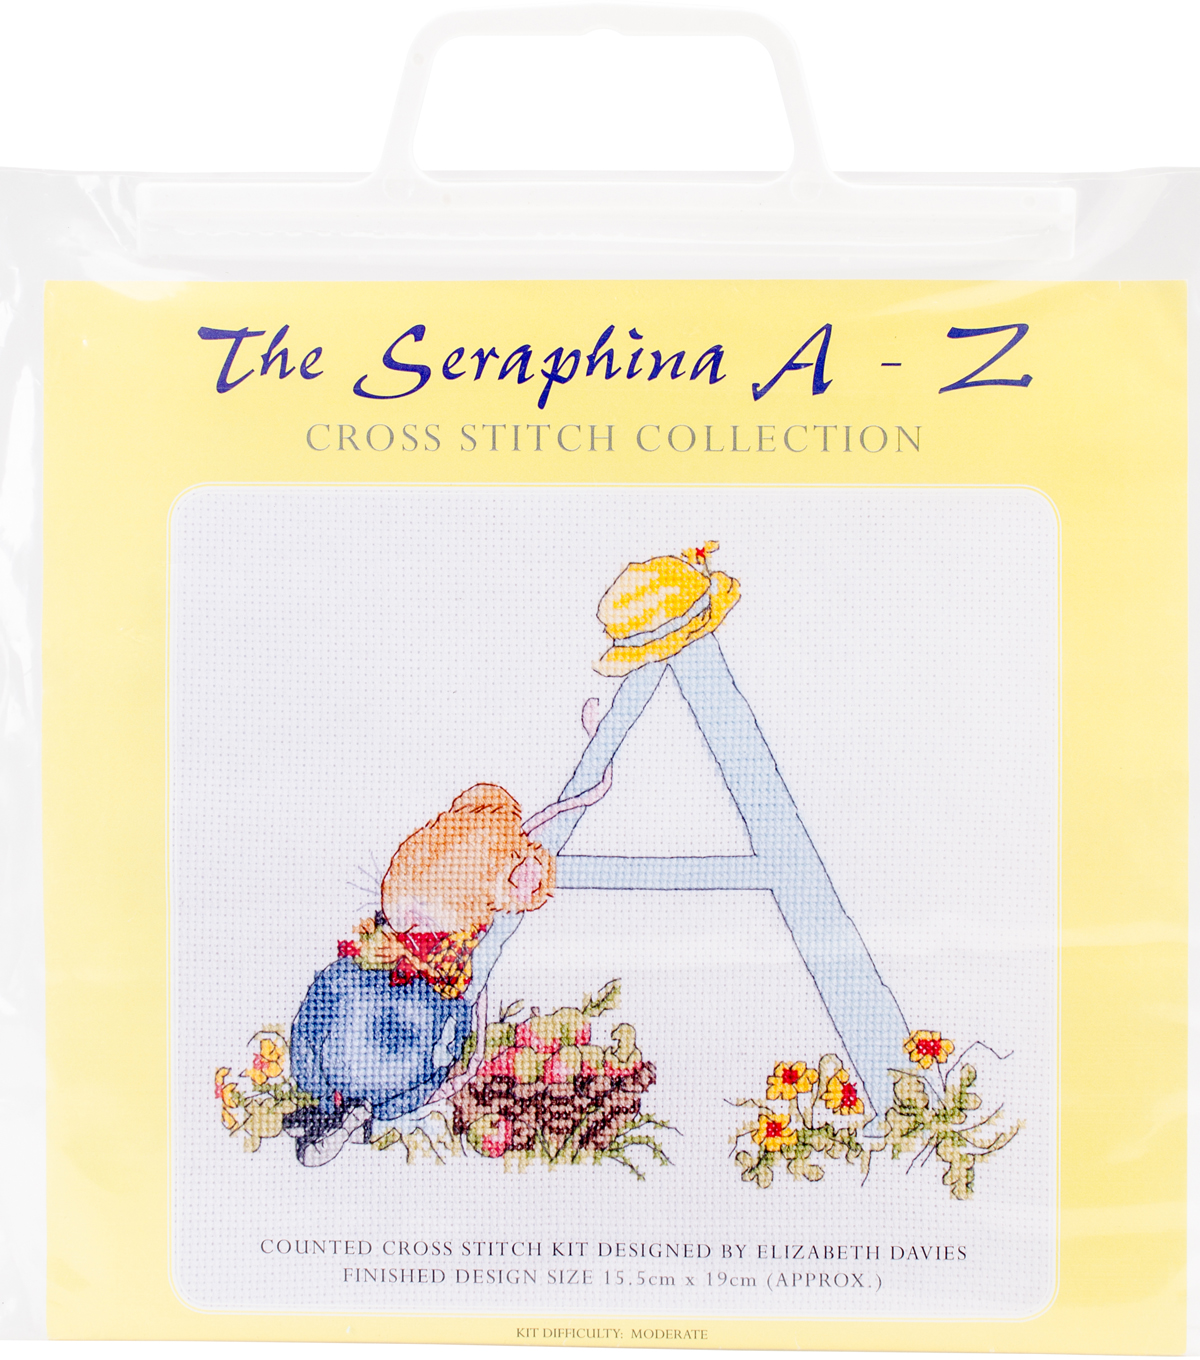 CWOC/Seraphina Counted Cross Stitch Kit 6\u0022X7.5\u0022-A